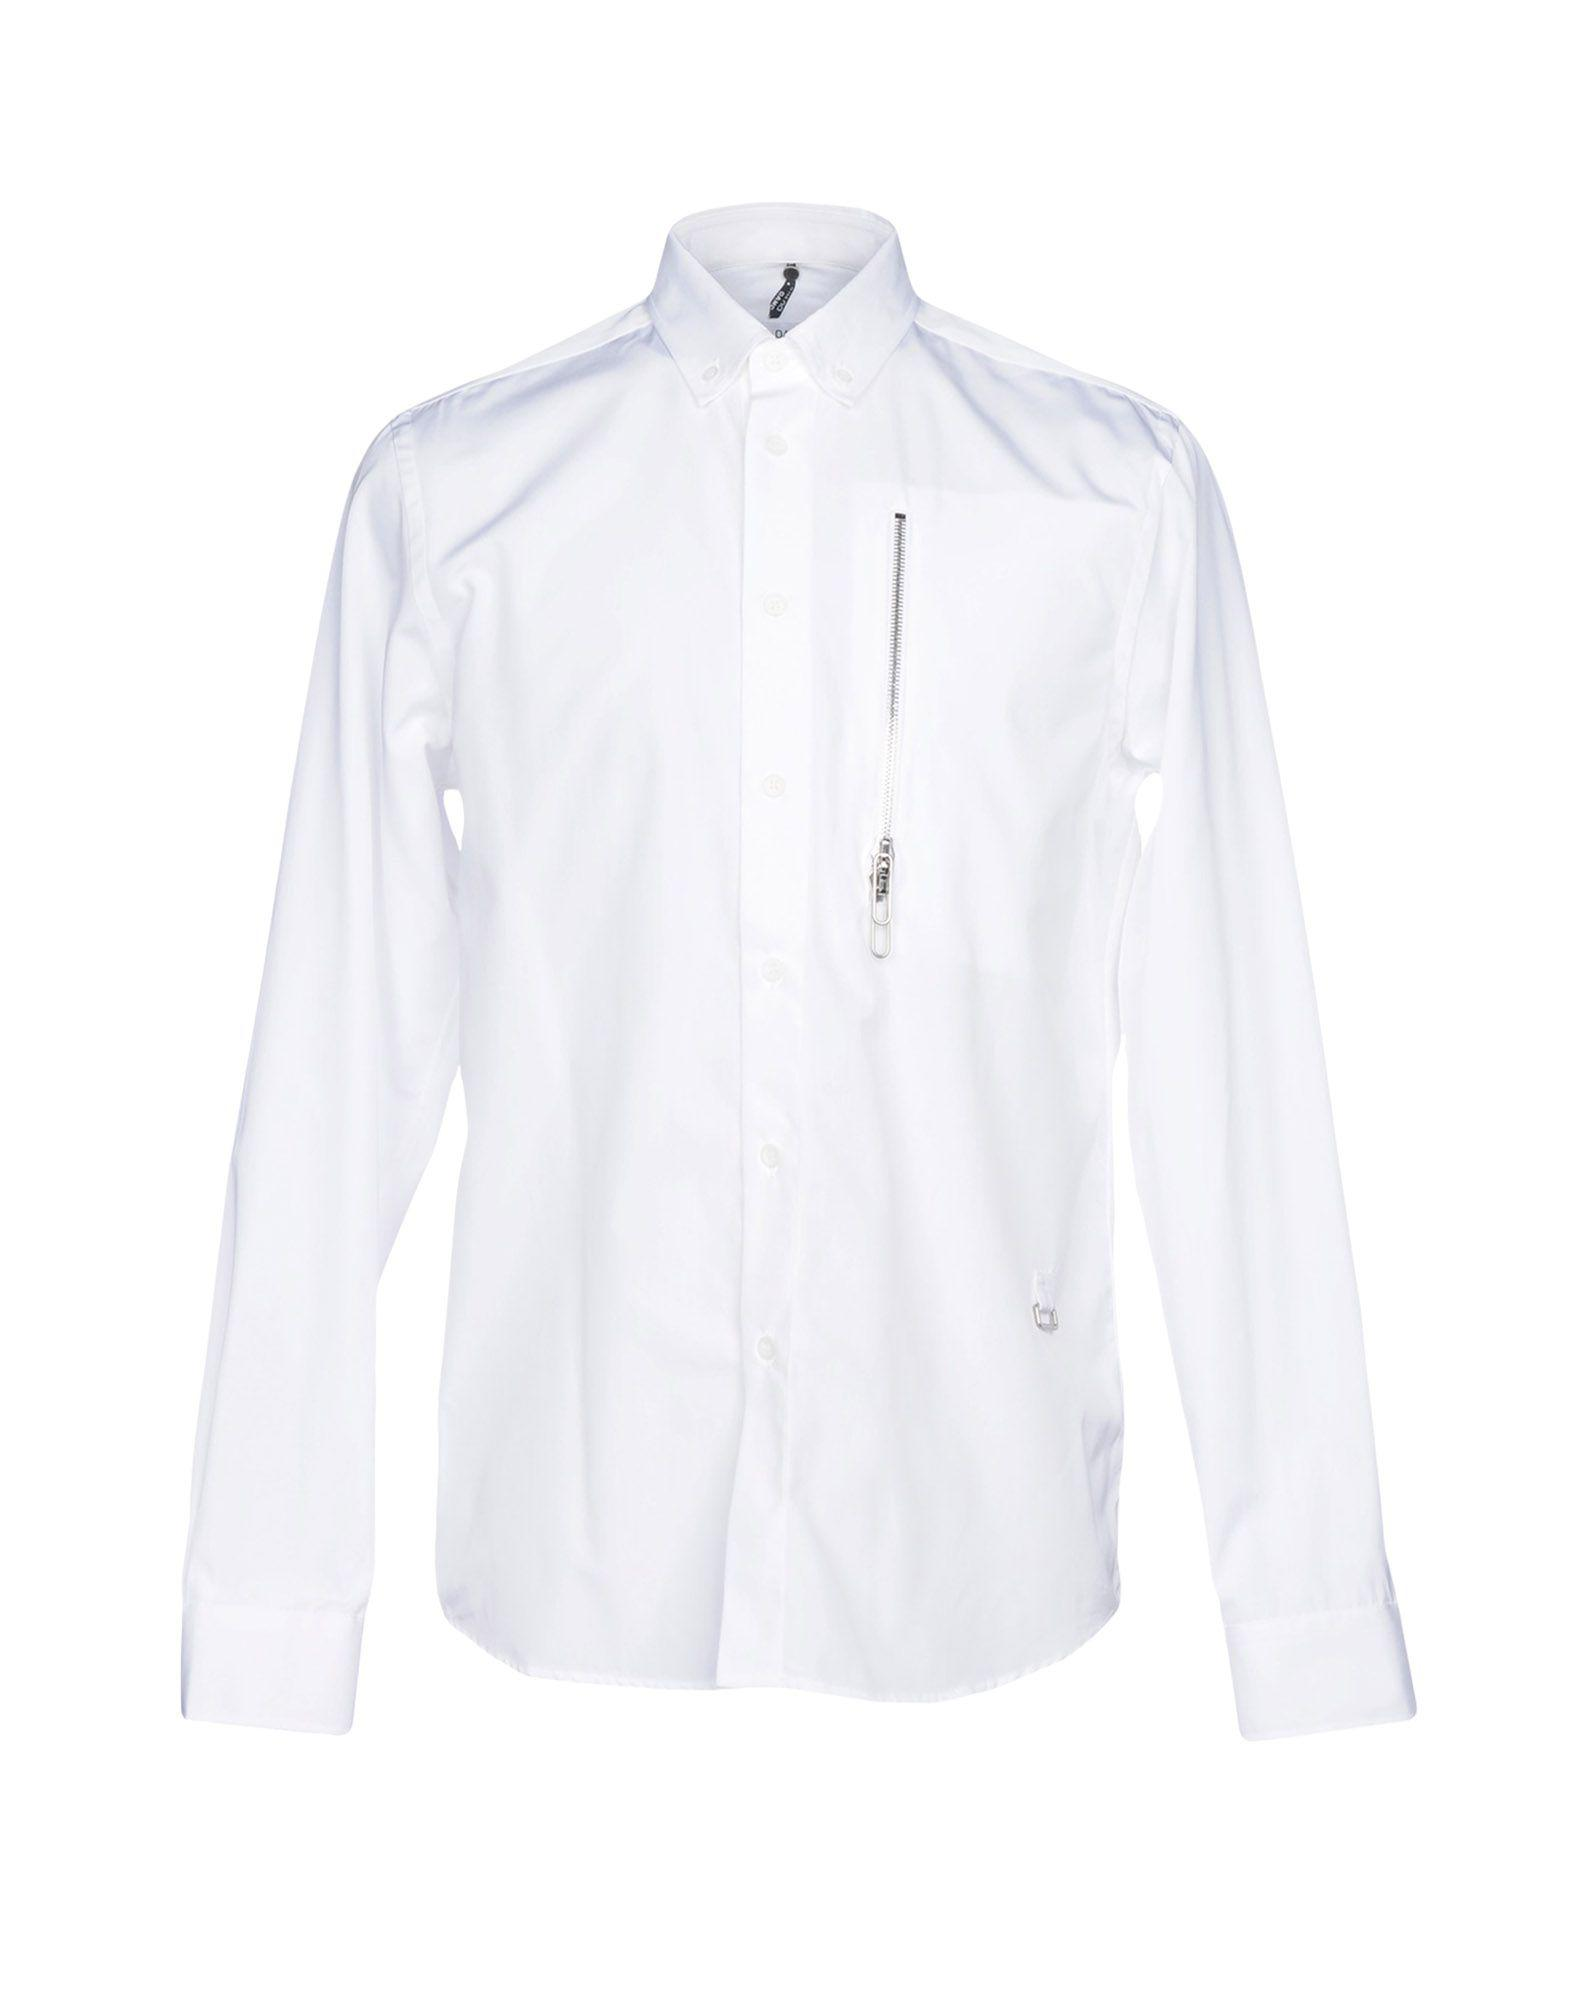 b48cb8d0159fb OAMC Shirt in White for Men - Lyst